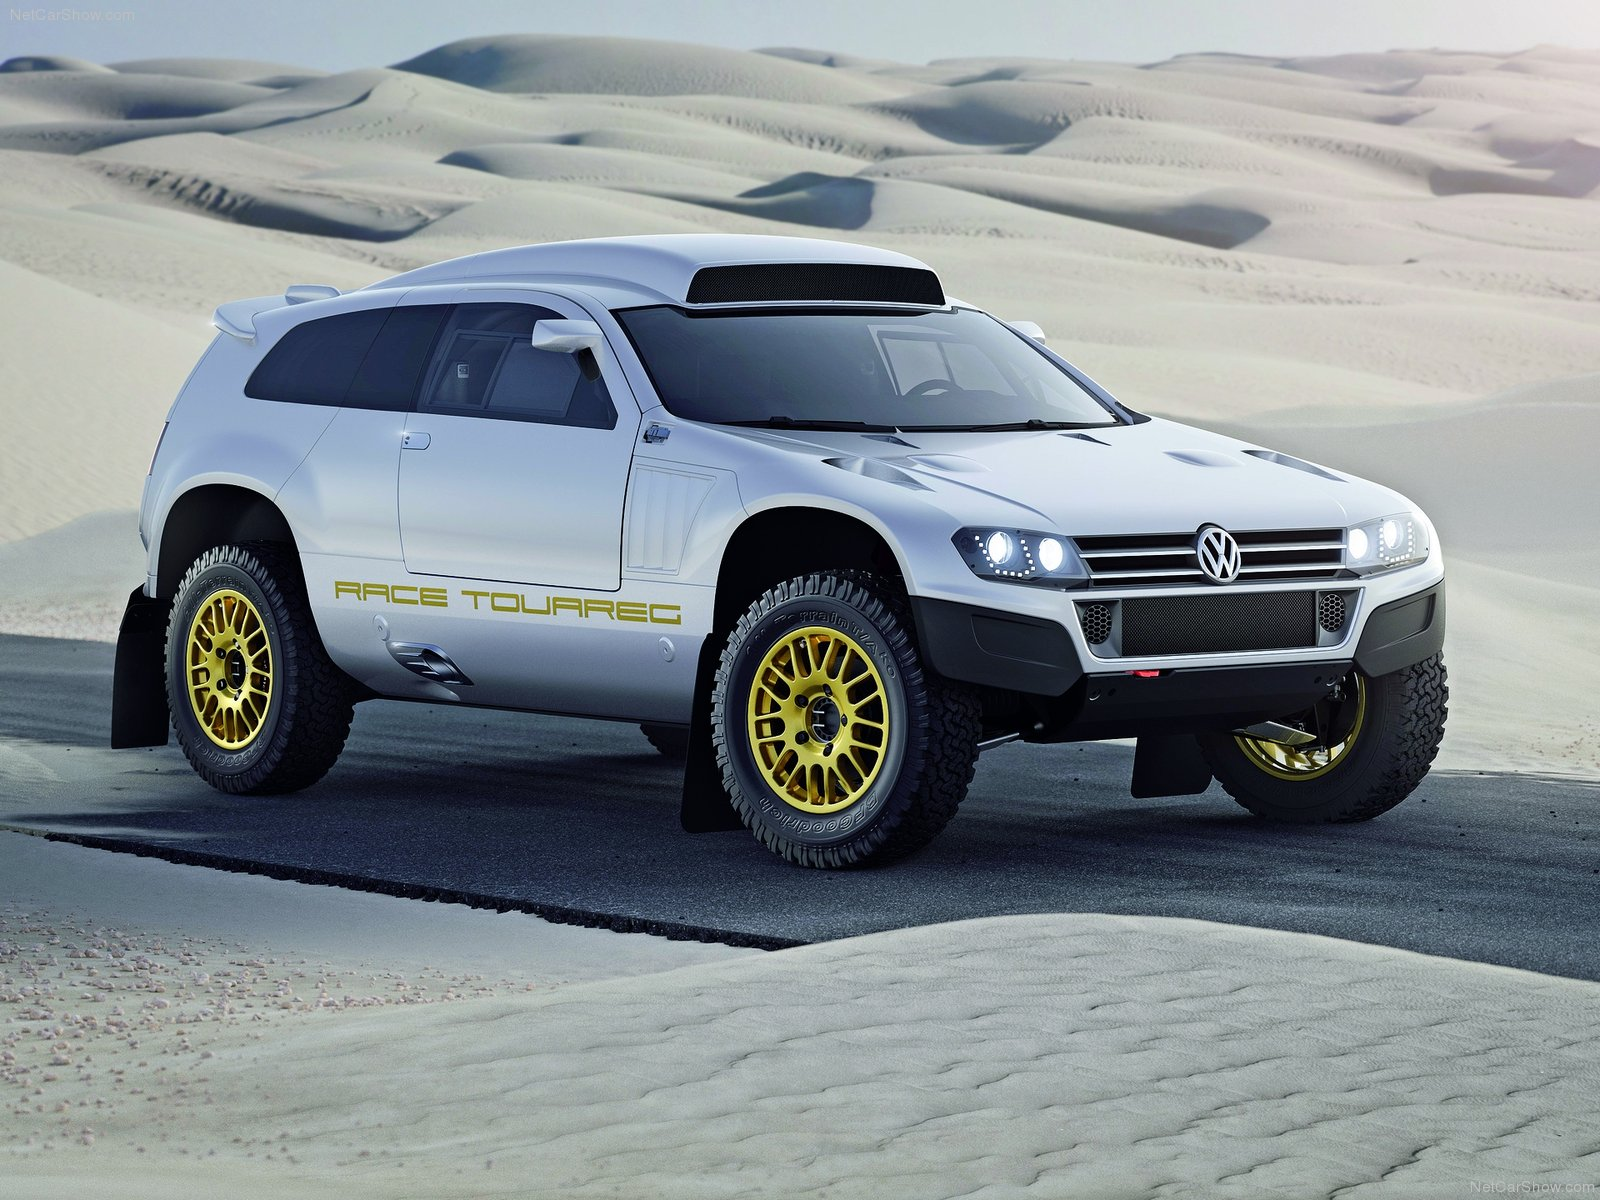 Volkswagen Race-Touareg 3 Qatar Concept photo 77898